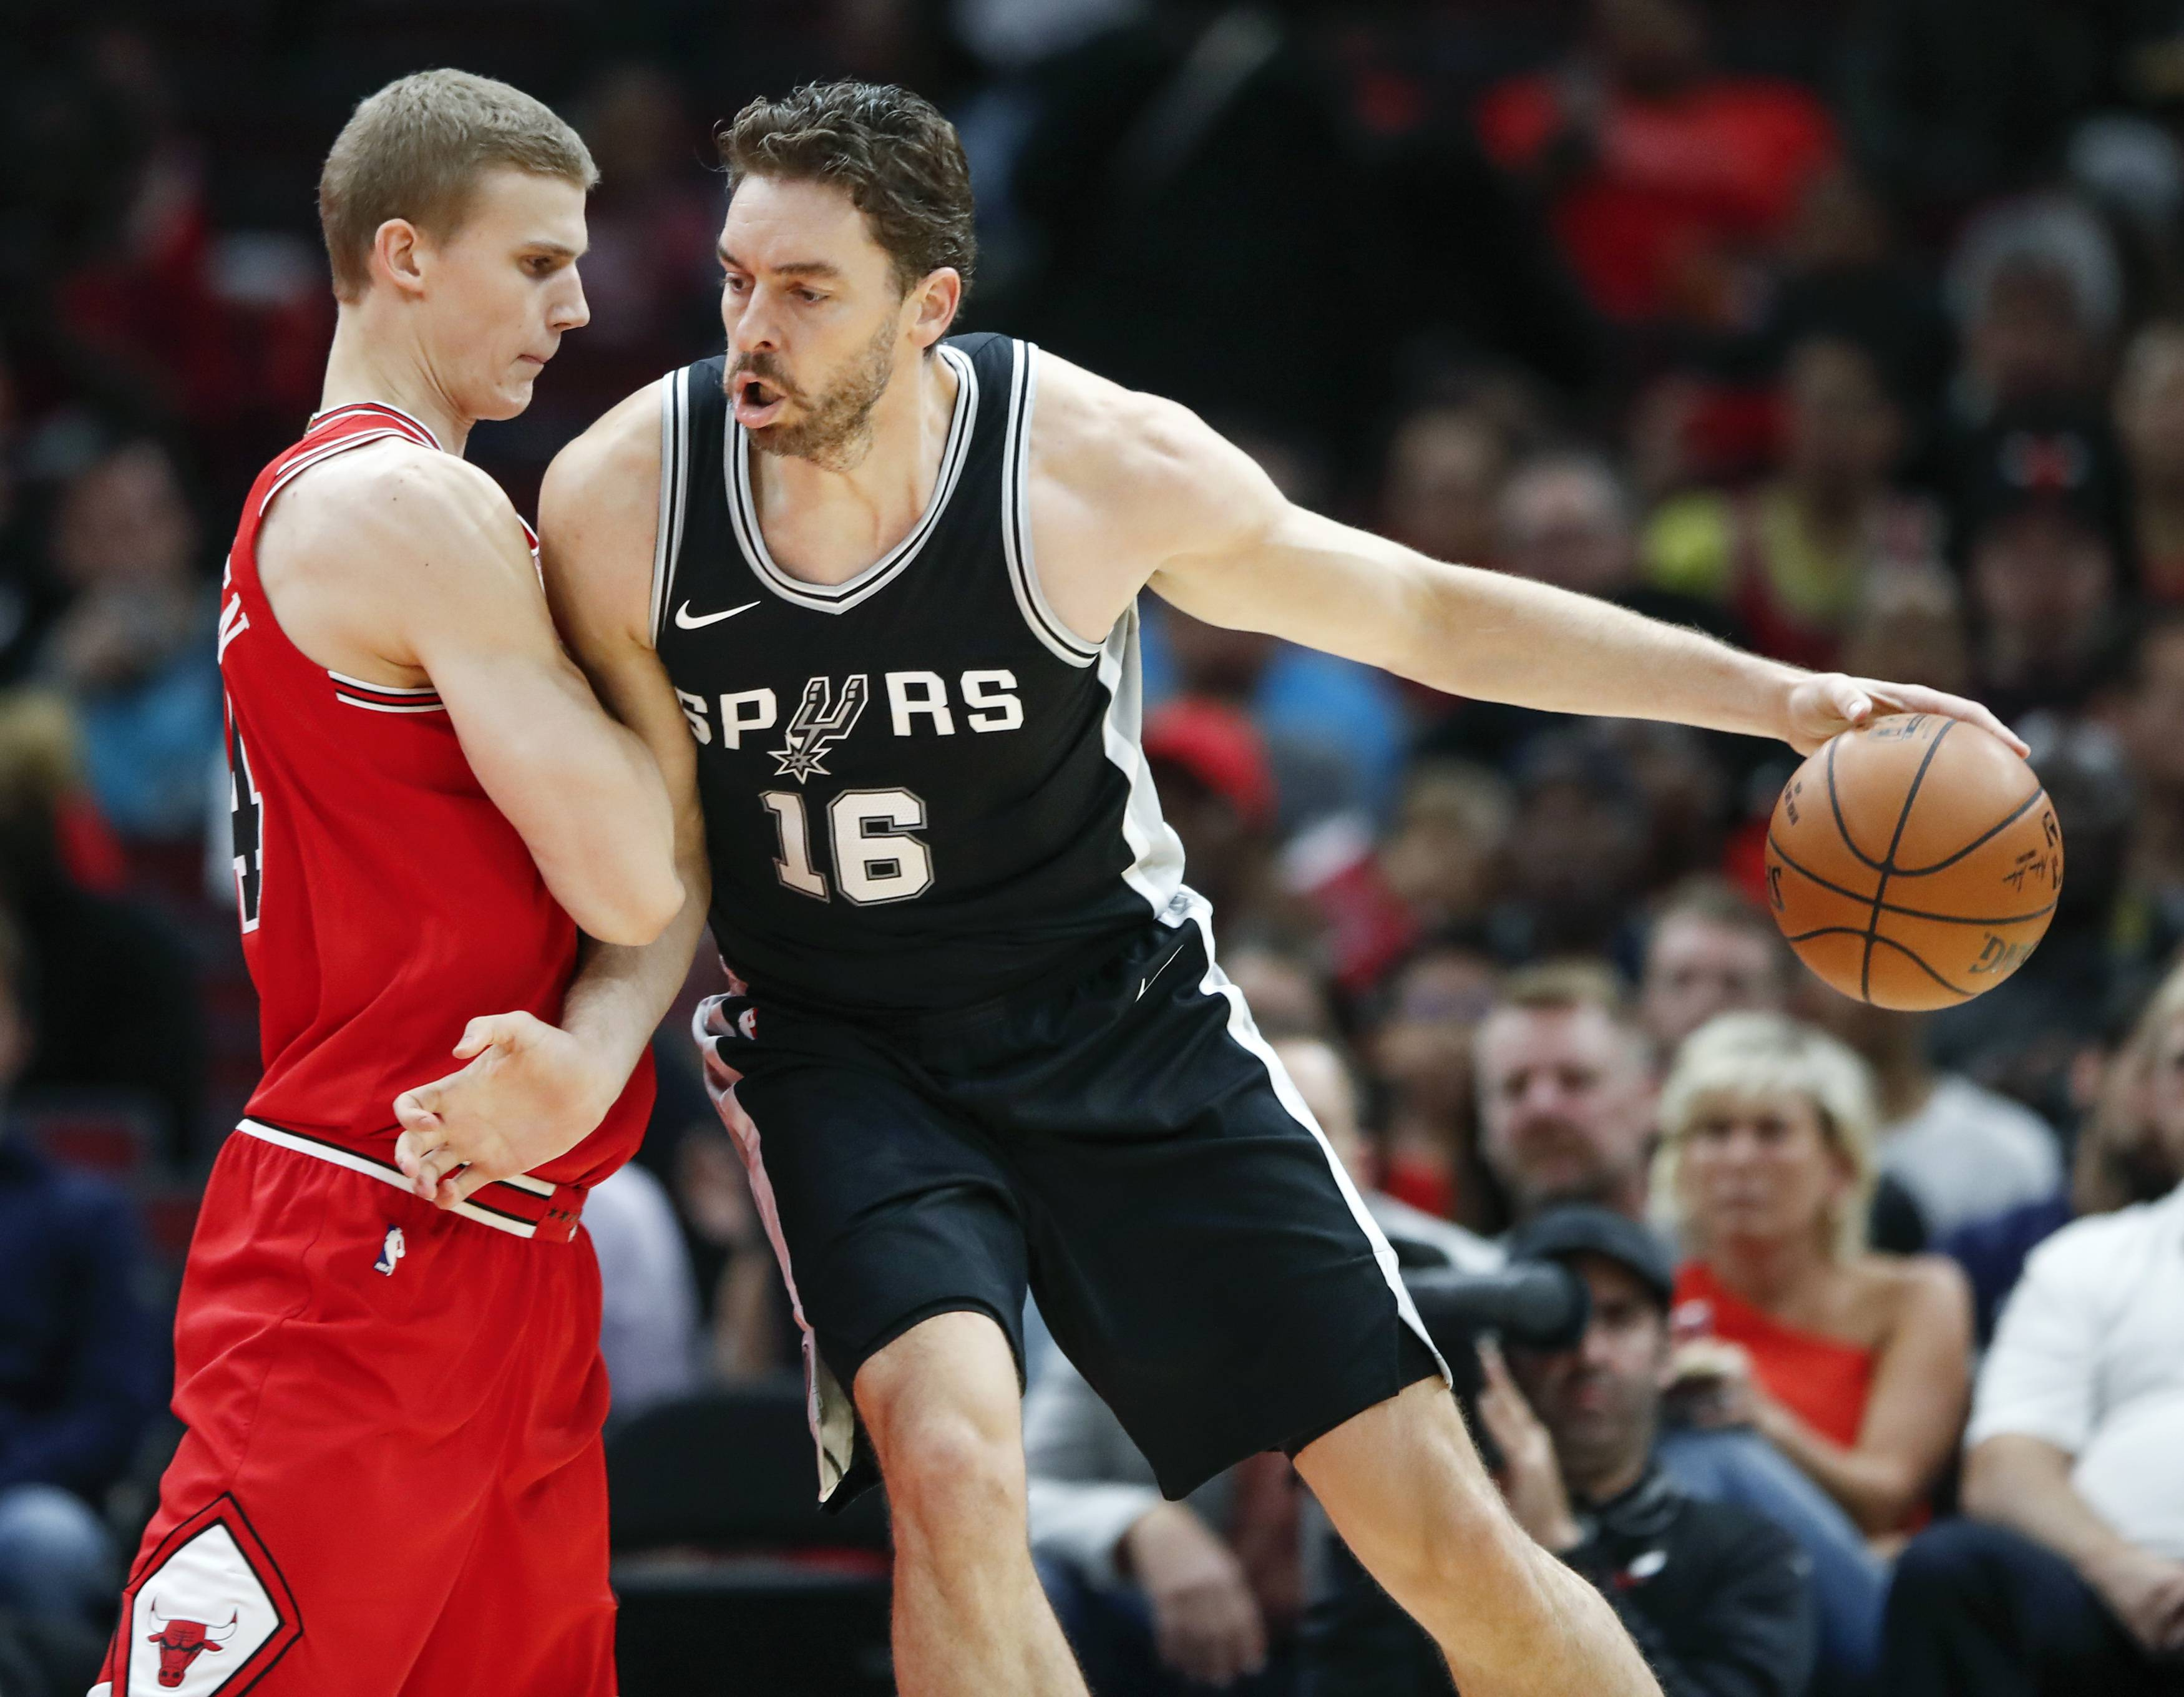 Chicago Bulls forward Lauri Markkanen, left, defends against San Antonio Spurs forward Pau Gasol, right, during the first half of an NBA basketball game, Saturday, Oct. 21, 2017, in Chicago.